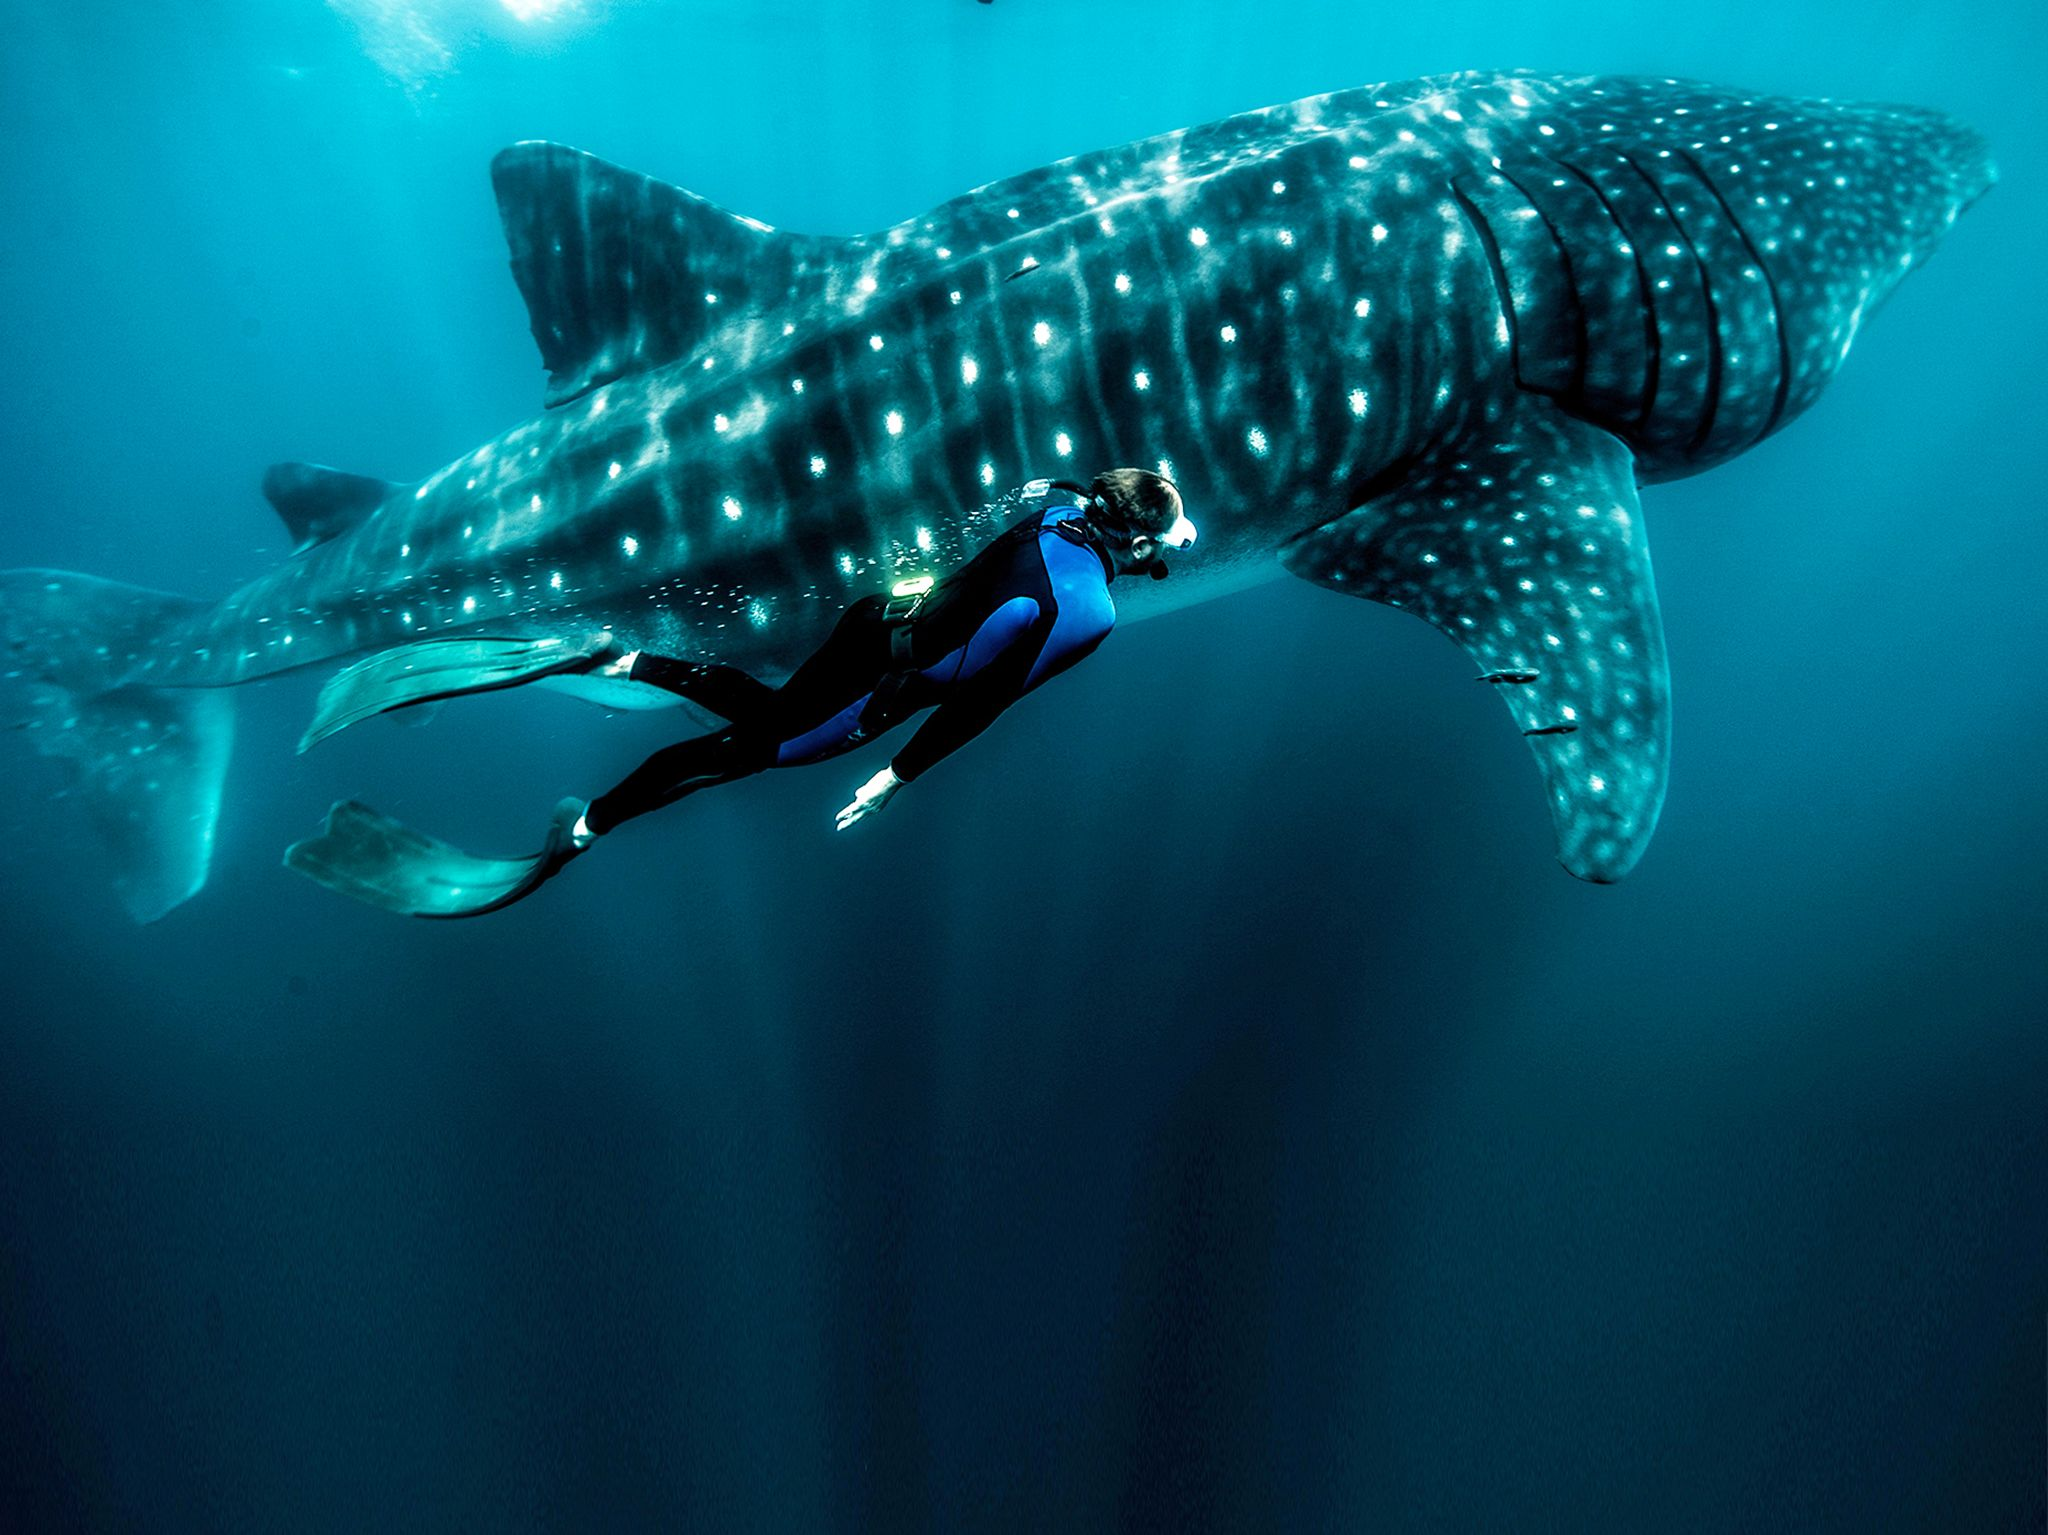 Sea Of Cortez, Mexico:  Zeb Hogan free dives alongside an enormous 30ft Whale shark. This image... [Foto del giorno - novembre 2018]